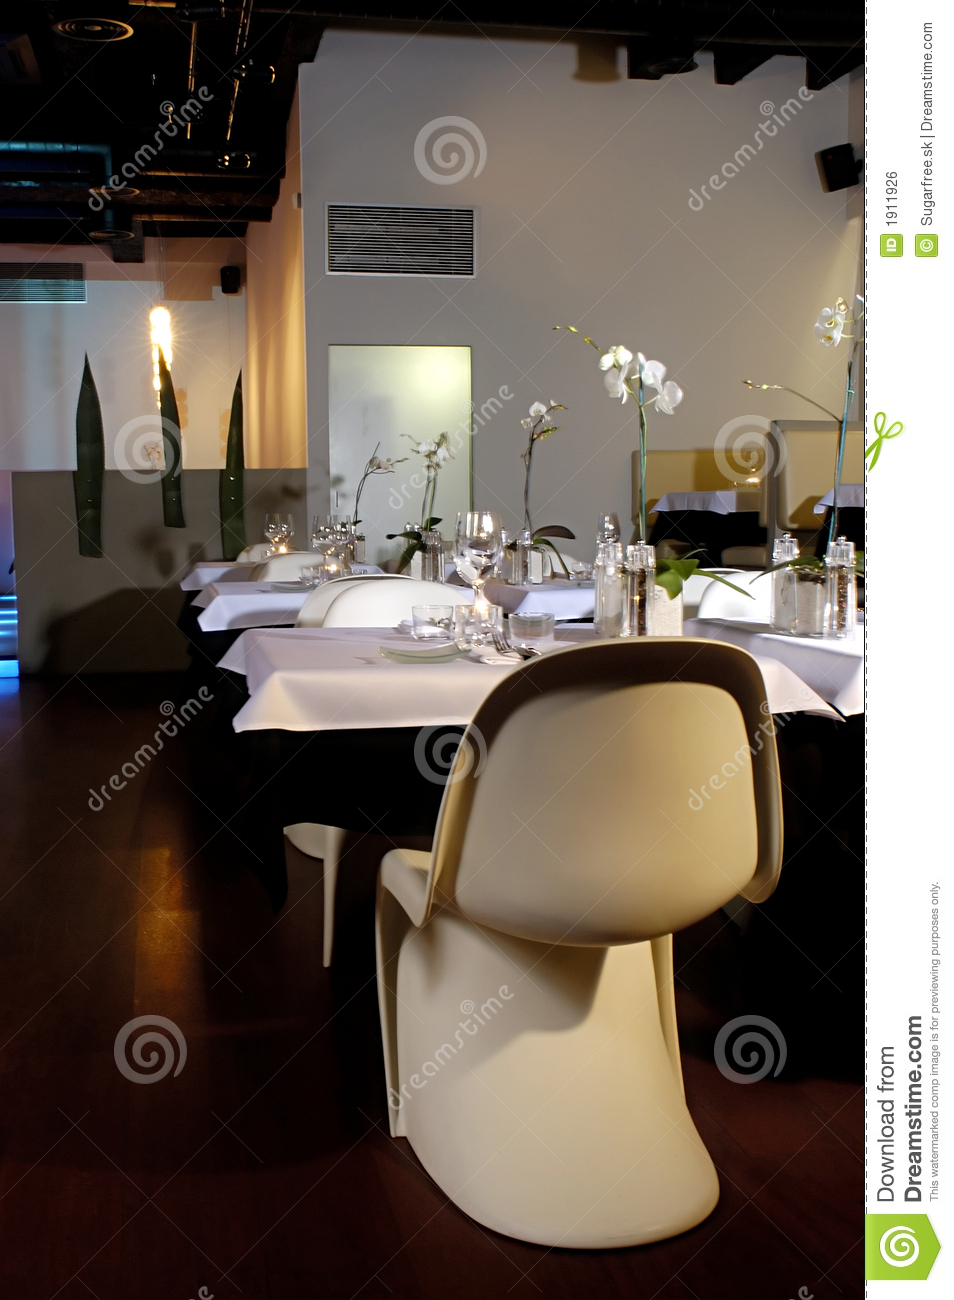 Restaurant interior royalty free stock image